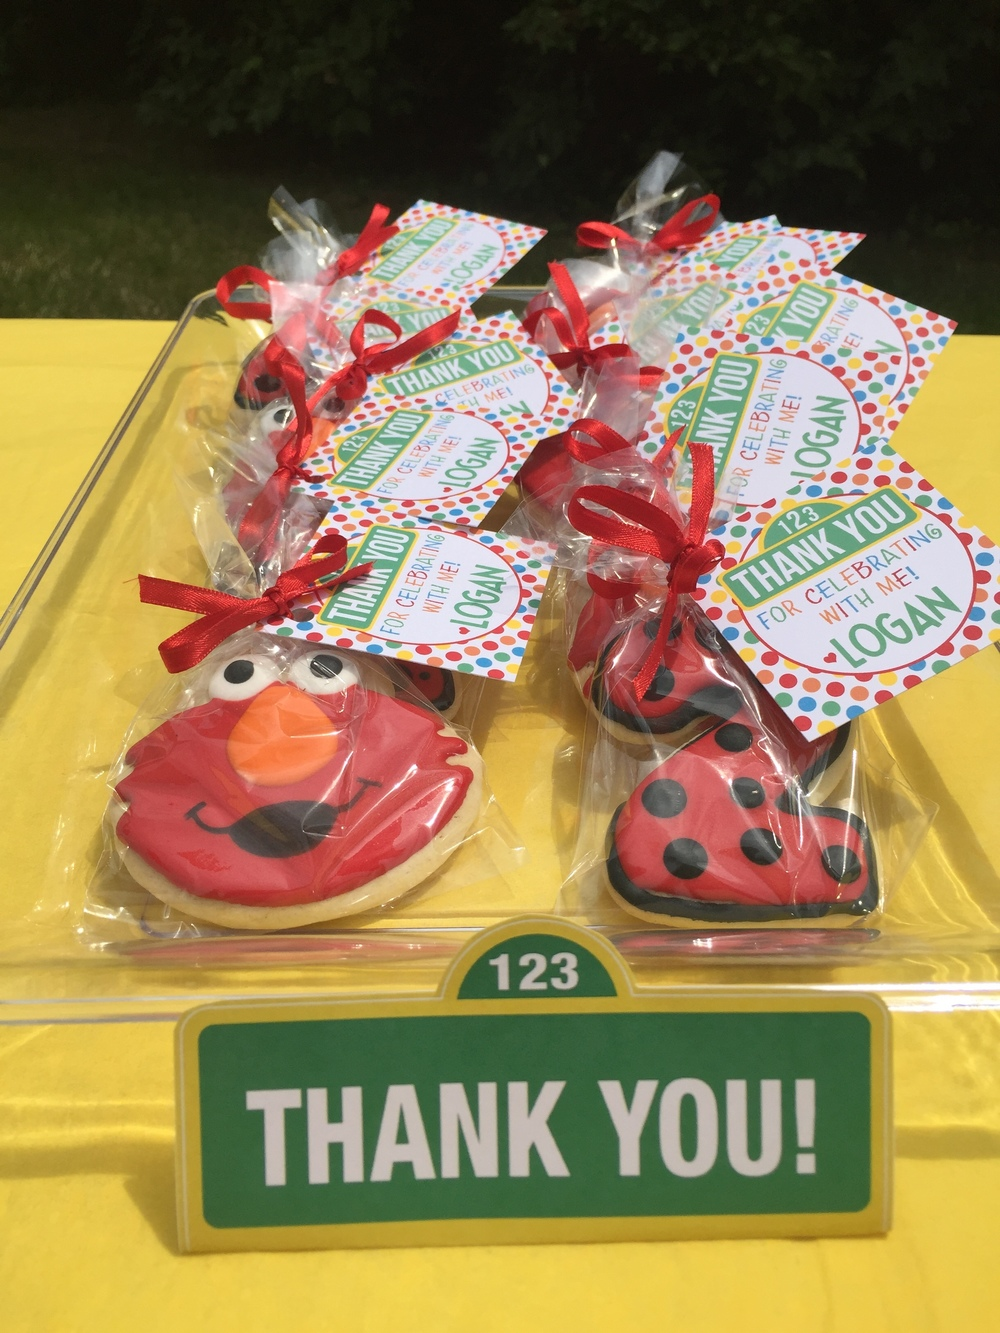 "img src=""httpwww.theparkwayevents.jpg"" alt=""San Francisco Bay Area Event Planner Sesame Street Elmo Birthday Party Favors"".JPG"